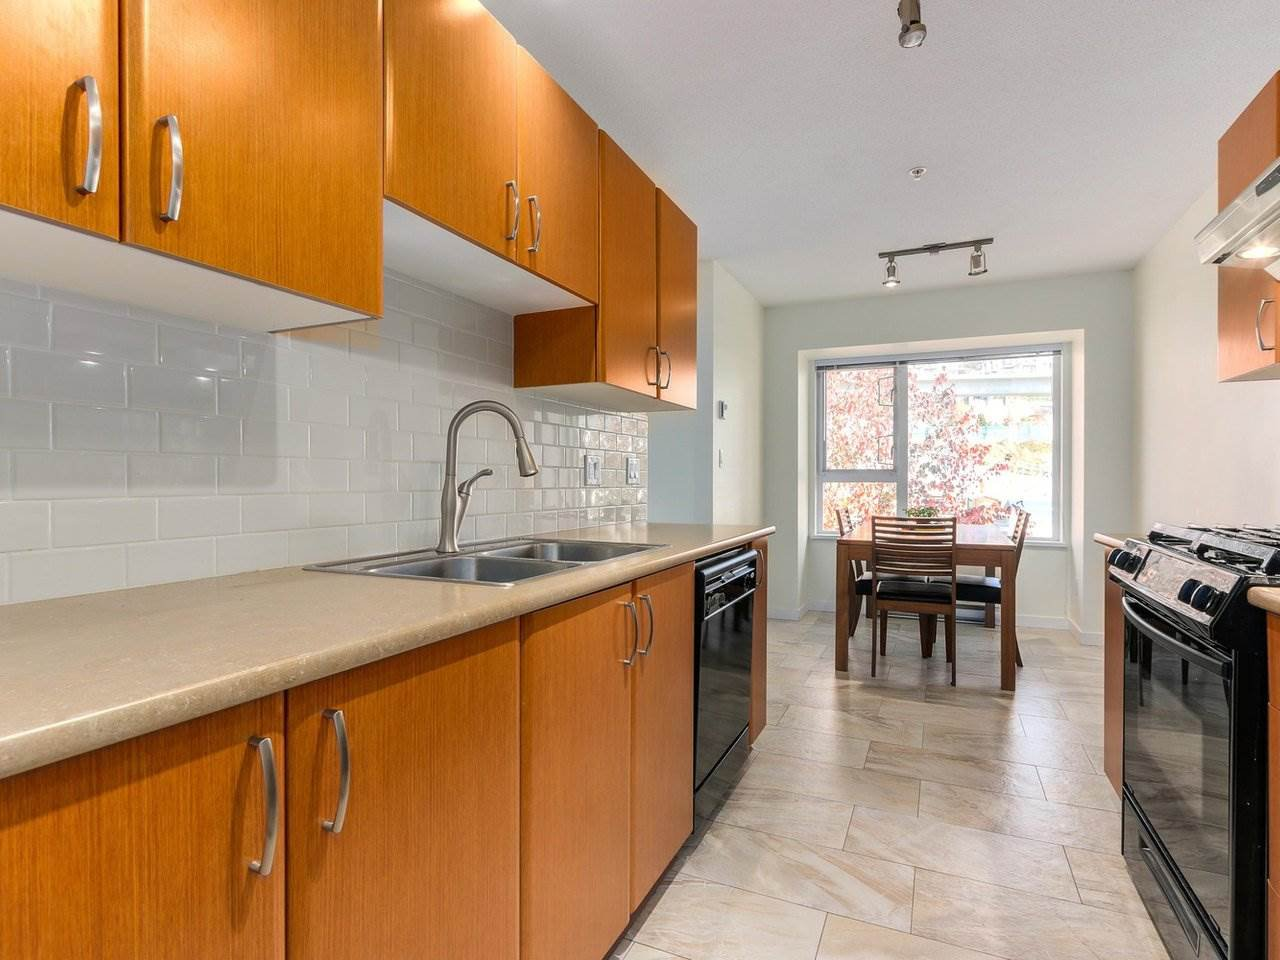 Main Photo: 306 4783 DAWSON STREET in Burnaby: Brentwood Park Condo for sale (Burnaby North)  : MLS®# R2317225